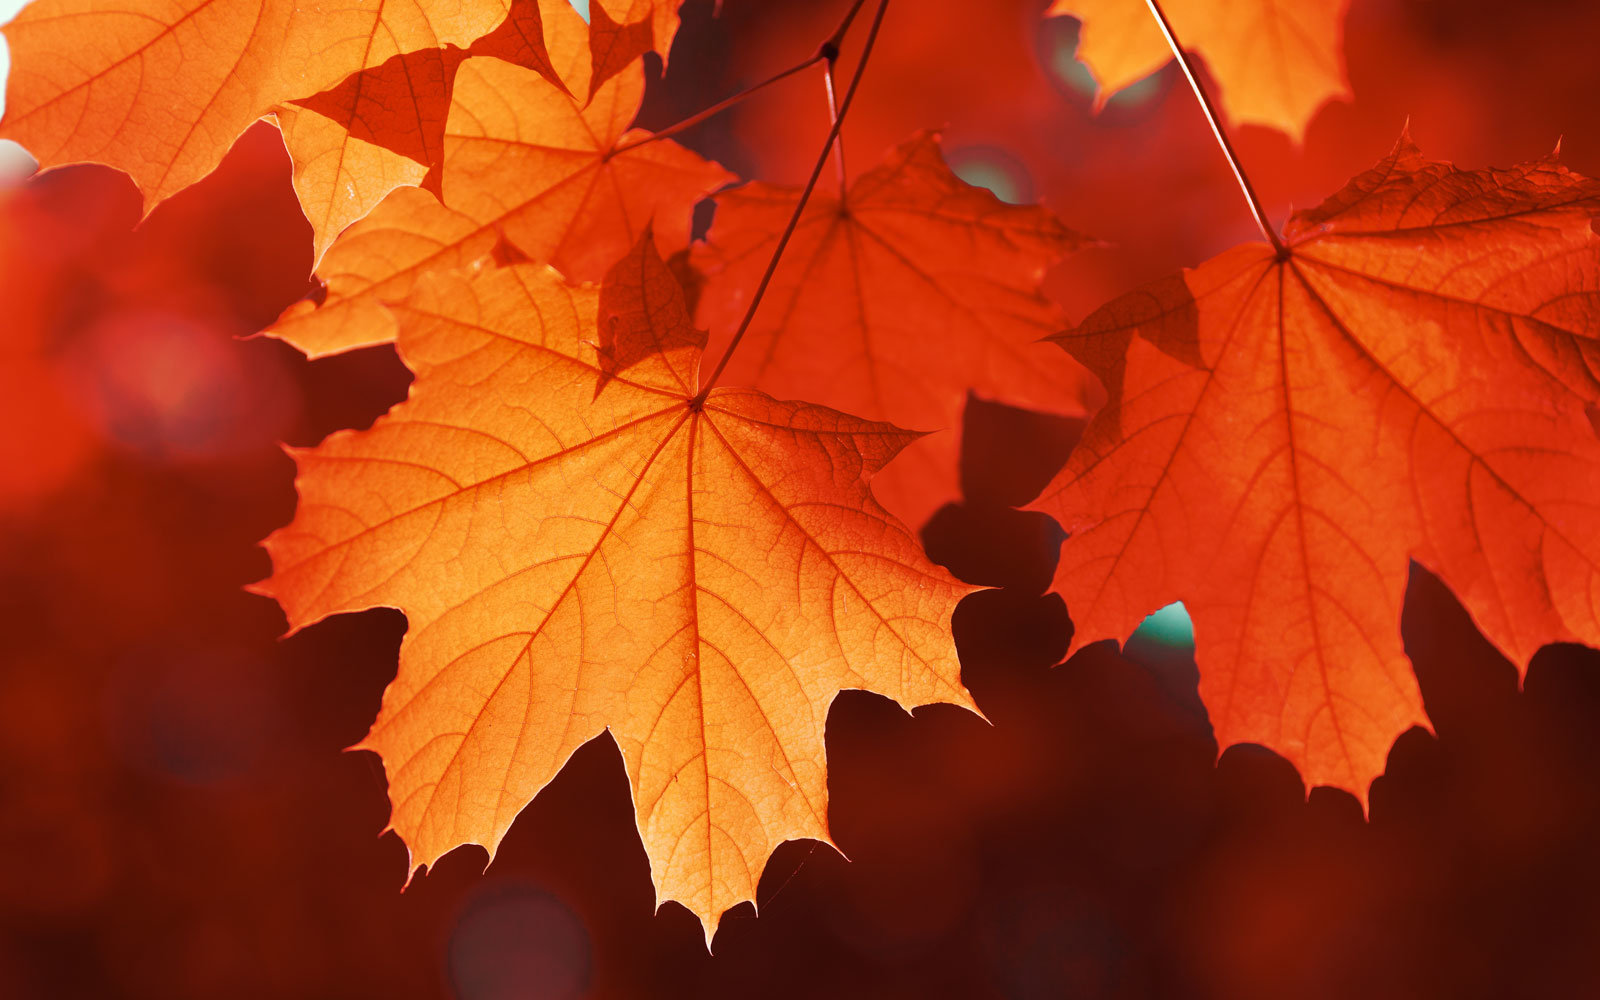 This Company Will Give You 1 For Every Fall Leaf You Send